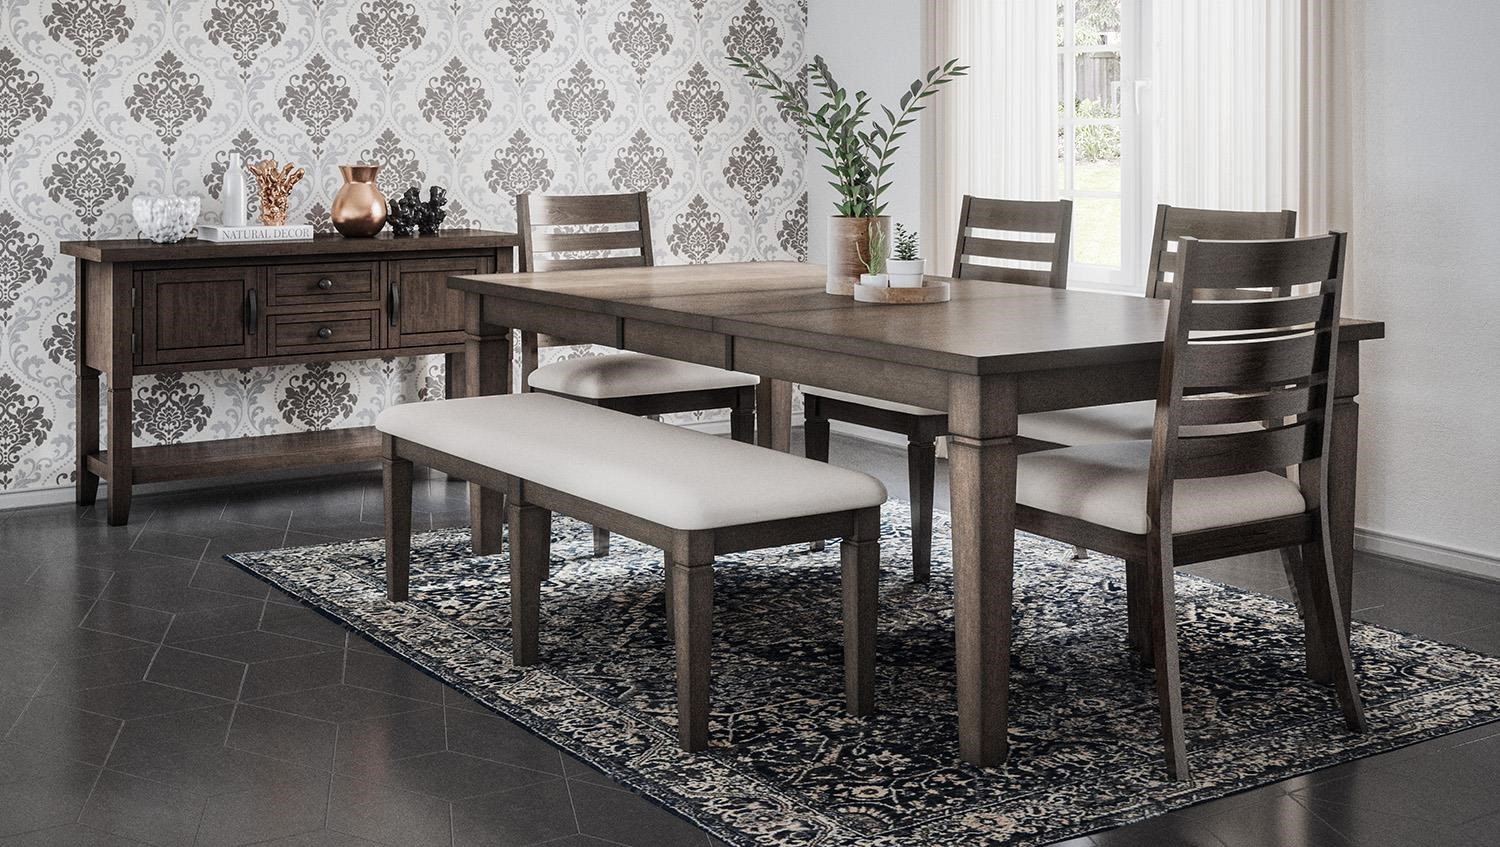 Lincoln Square Table and Chair Set with Bench by Jofran at Stoney Creek Furniture